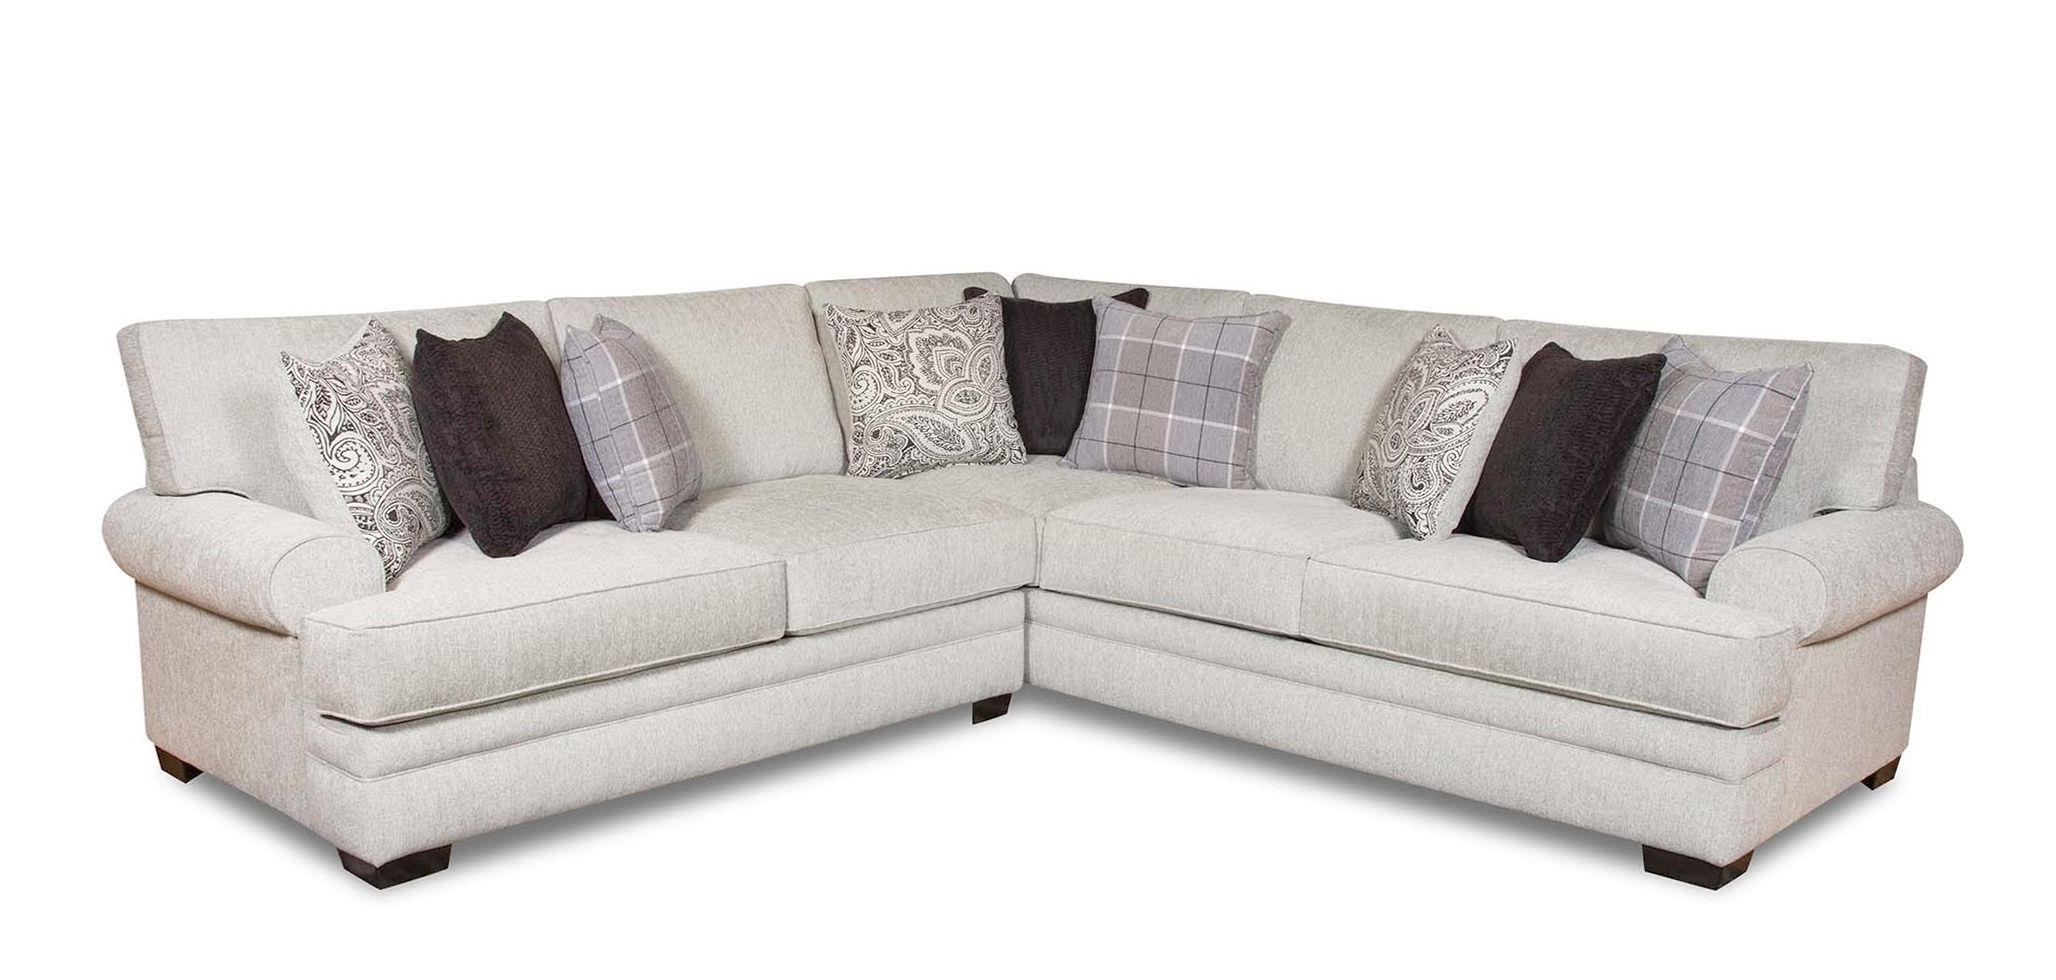 2019 Corinthian 5900 2 Piece Transitional Sectional (View 11 of 20)